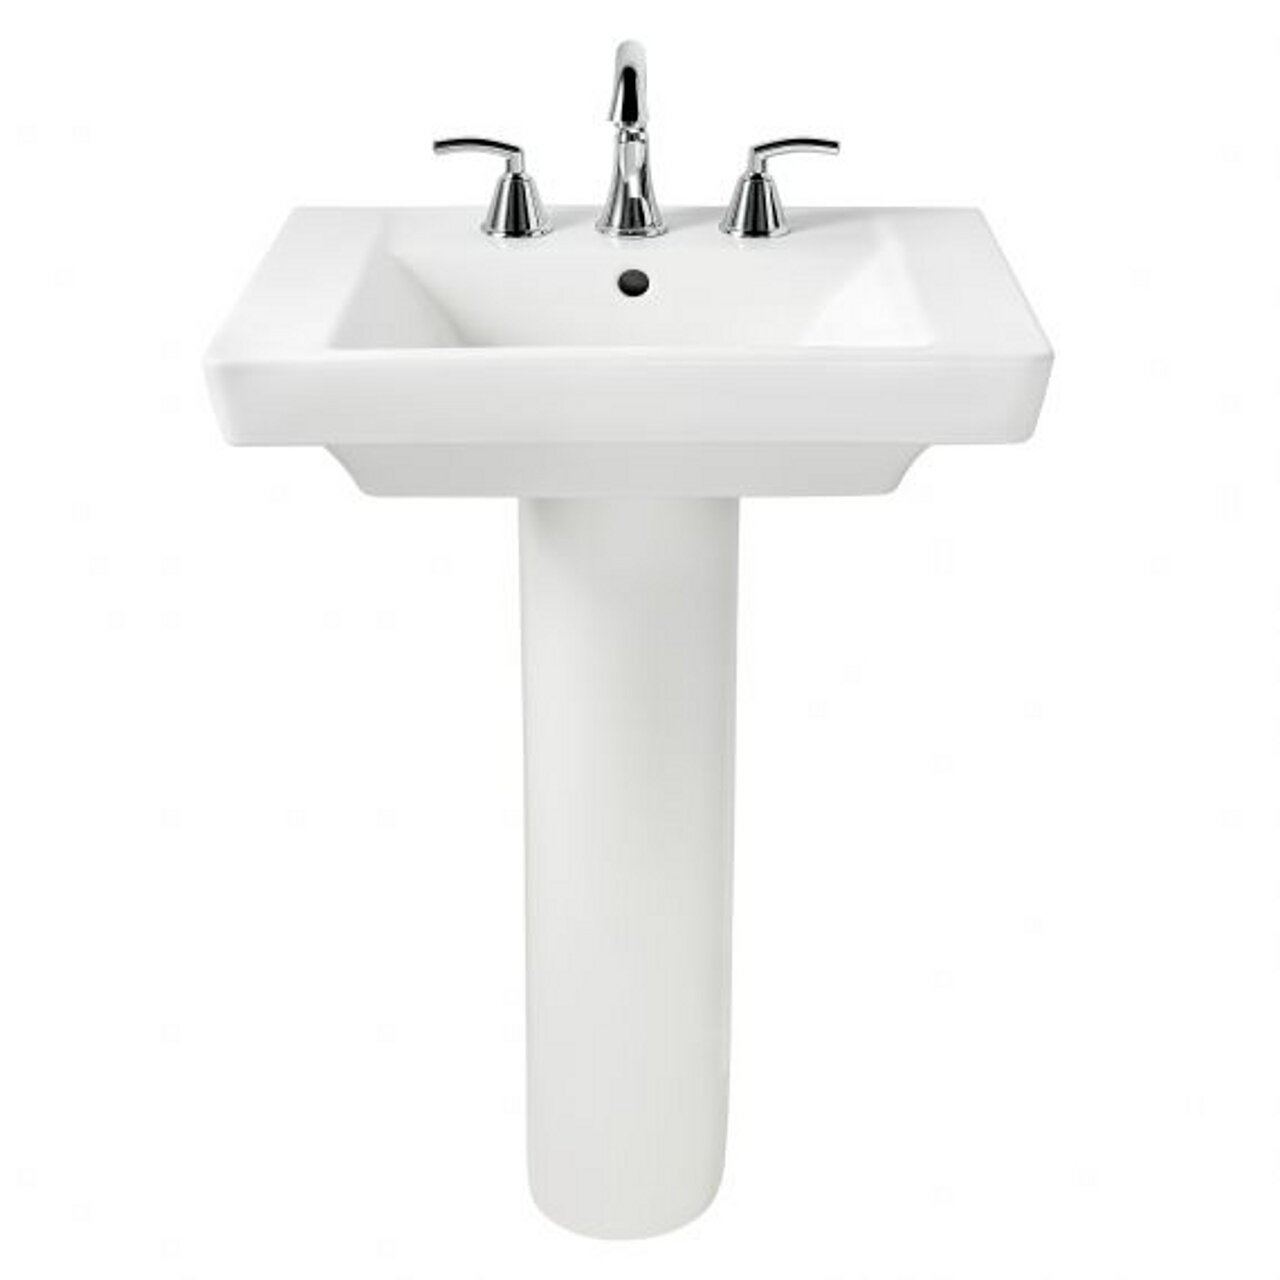 Short Pedestal Sink : ... Standard: Modern White Pedestal Sink Ideal for Small Bathrooms